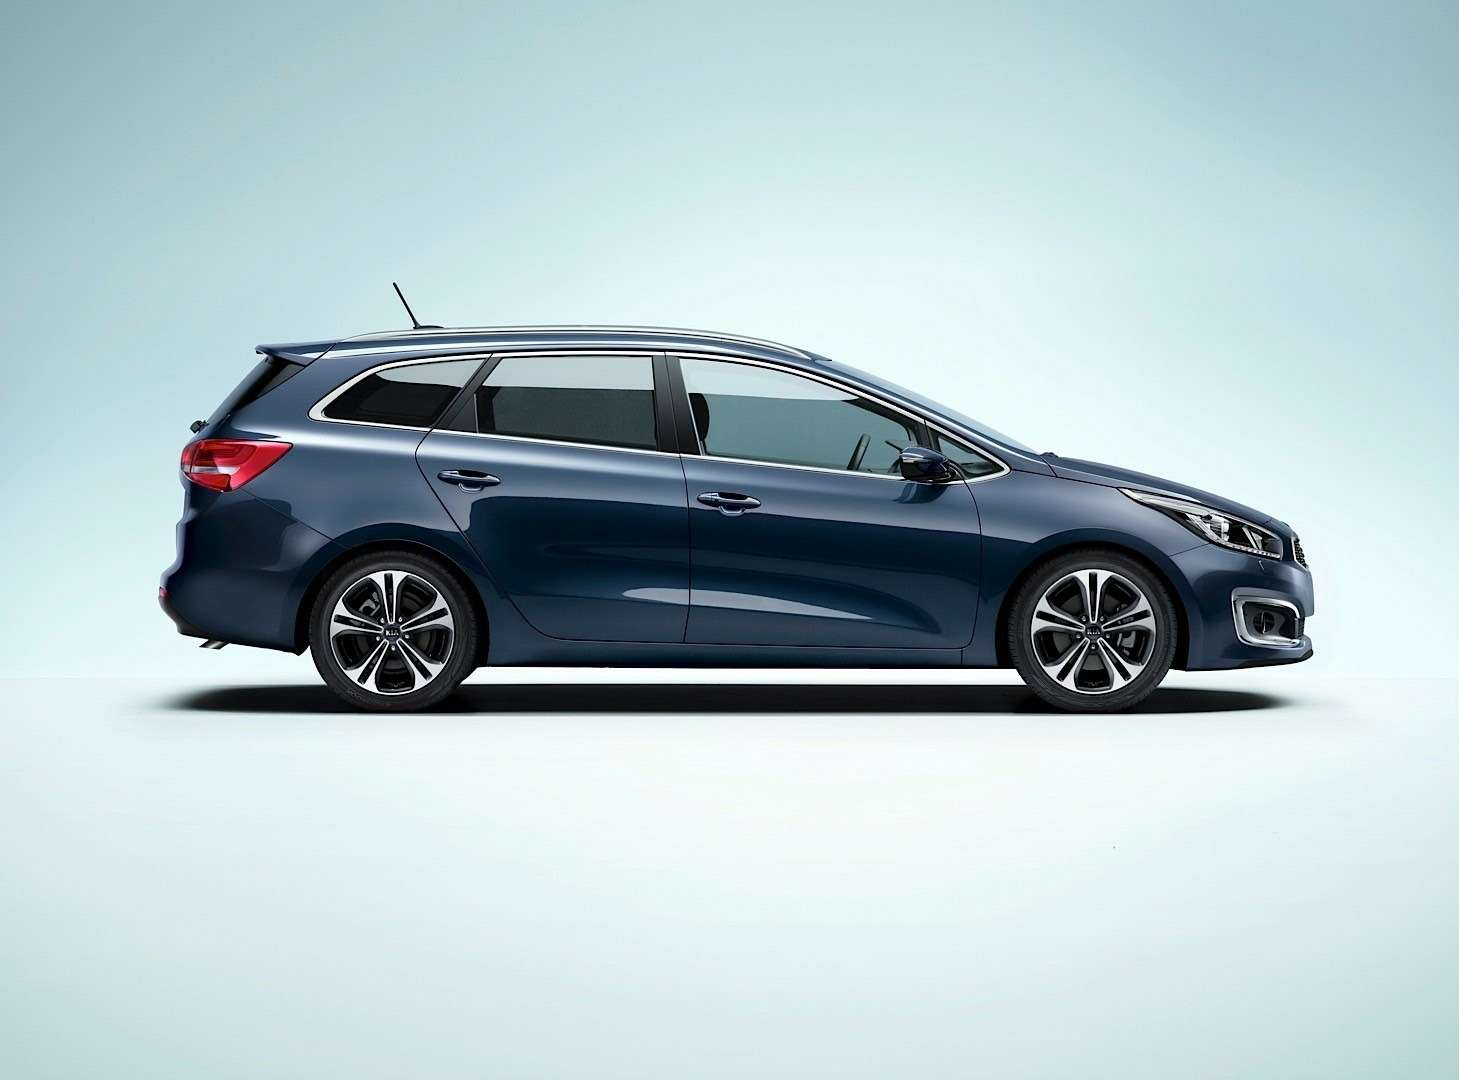 2016-kia-cee-d-brings-subtle-visual-upgrades-new-engines-and-sporty-gt-line-photo-gallery_1